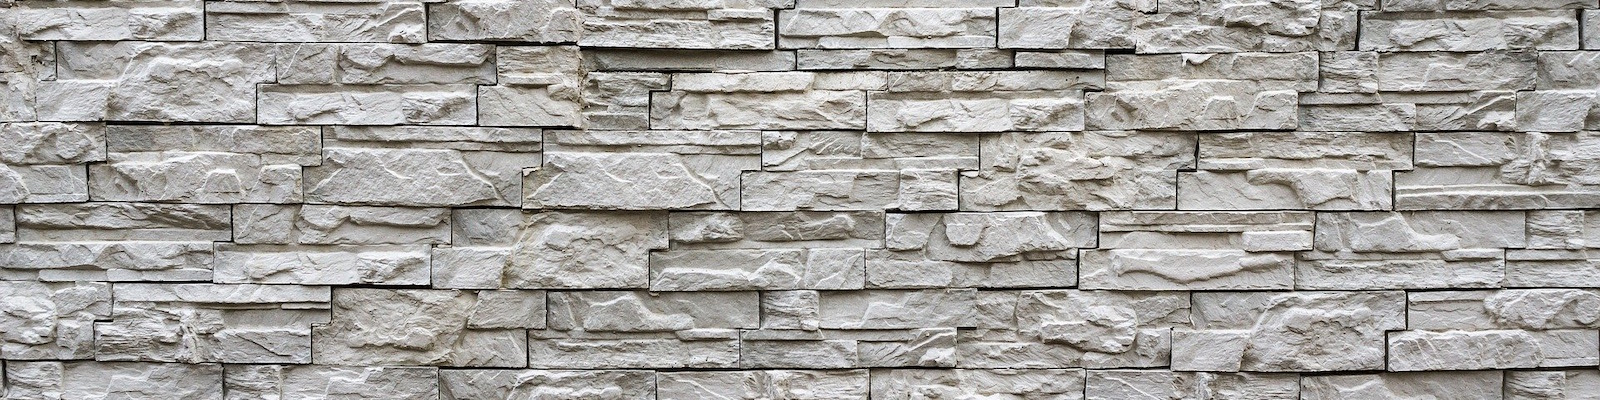 wall made of stones cut in rectangles